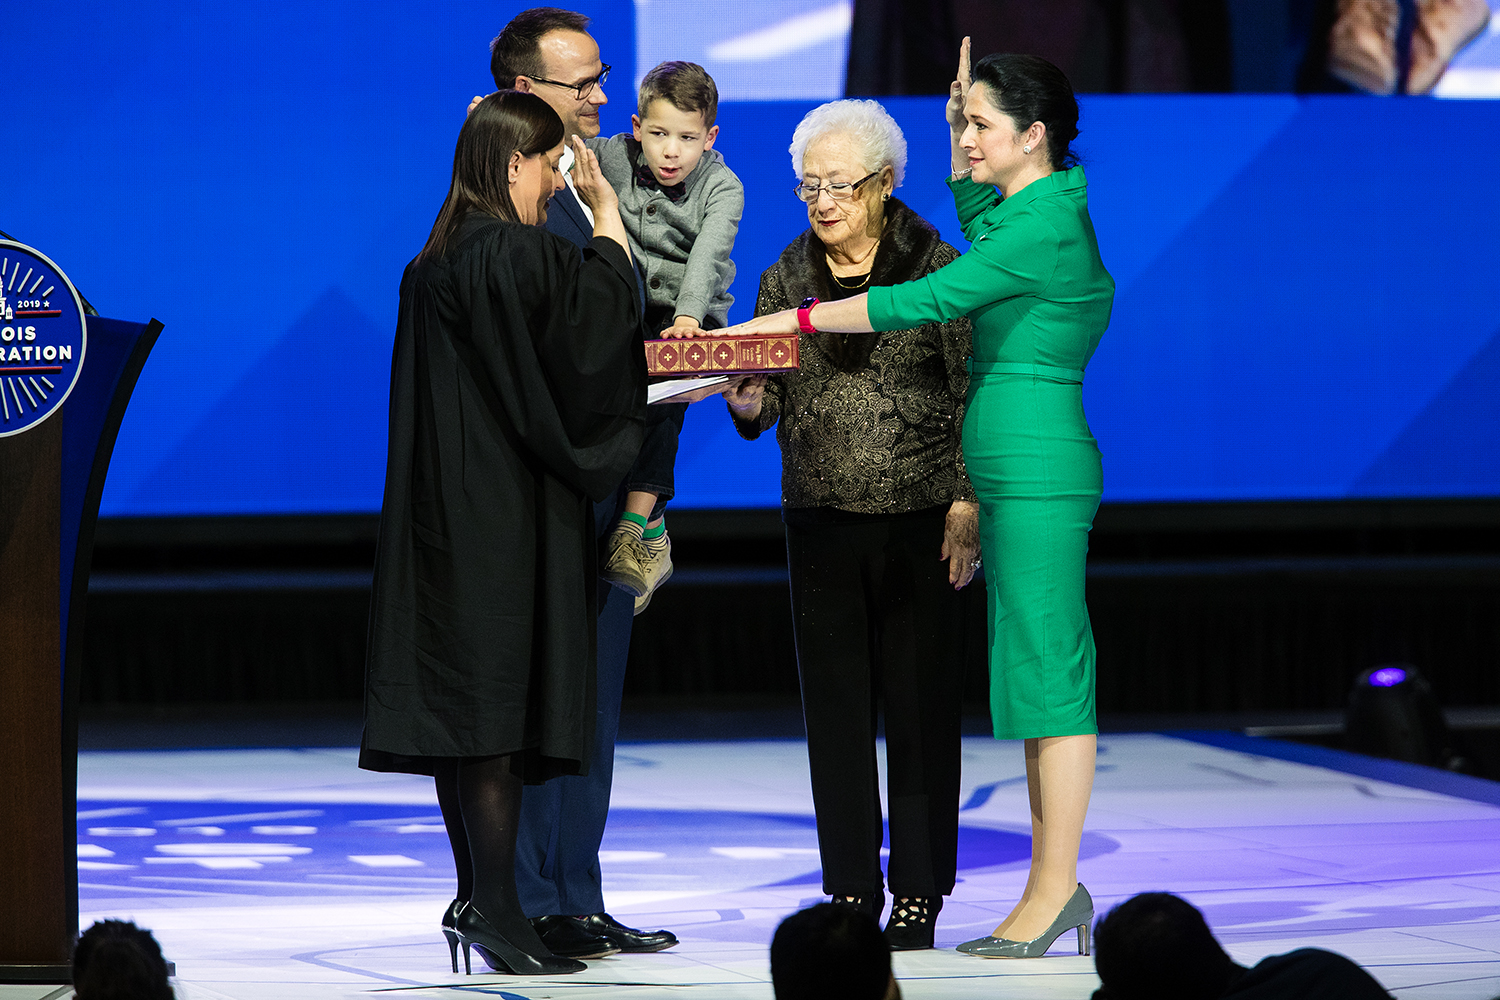 Comptroller Susana Mendoza takes the oath of office from judge Rossana Patricia Fernandez during the Illinois Inaugural Ceremony at the Bank of Springfield Center Monday, Jan. 14, 2019. Mendoza's husband, David Szostak holds their son David while her mother, Susana H. Mendoza, helps hold the Bible. [Ted Schurter/The State Journal-Register]